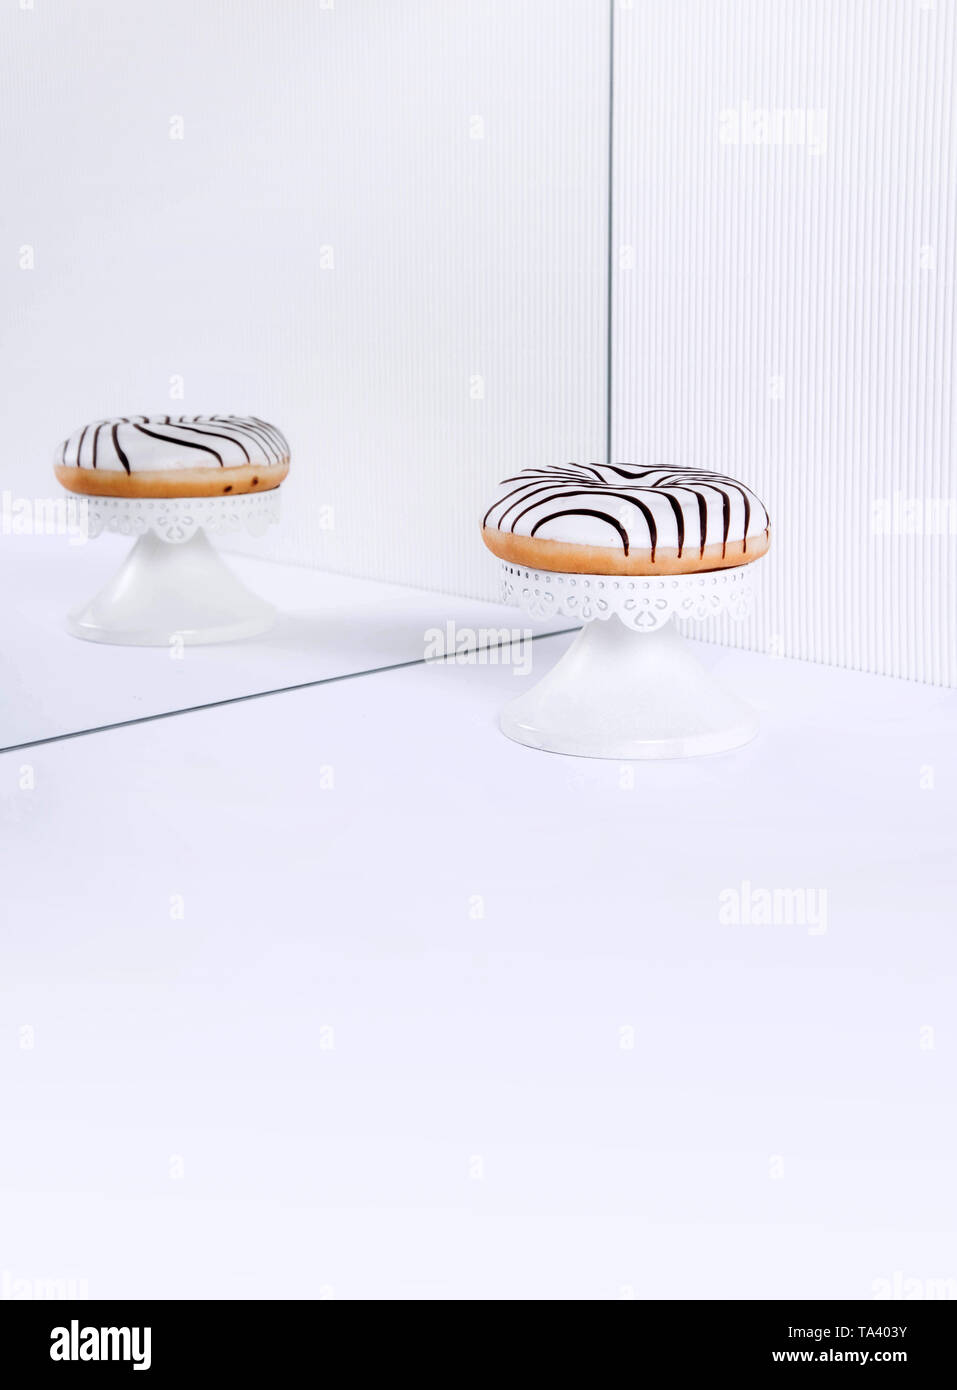 Striped donuts on a white background. Stylish minimal concept - Stock Image